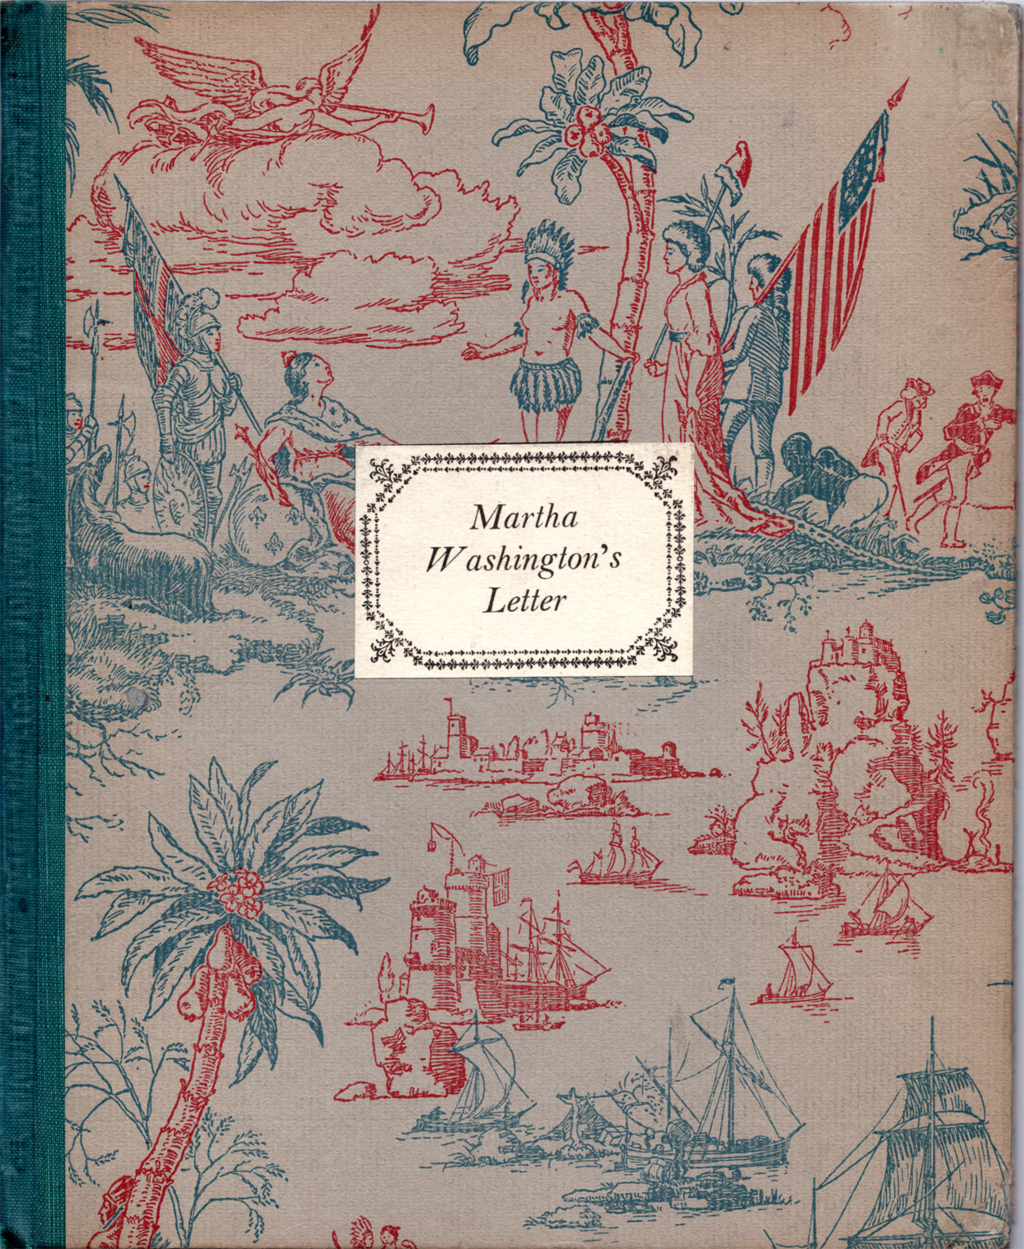 Martha Washington's Letter. Cover design by Rudolph Ruzicka. Printed by The Merrymount Press.